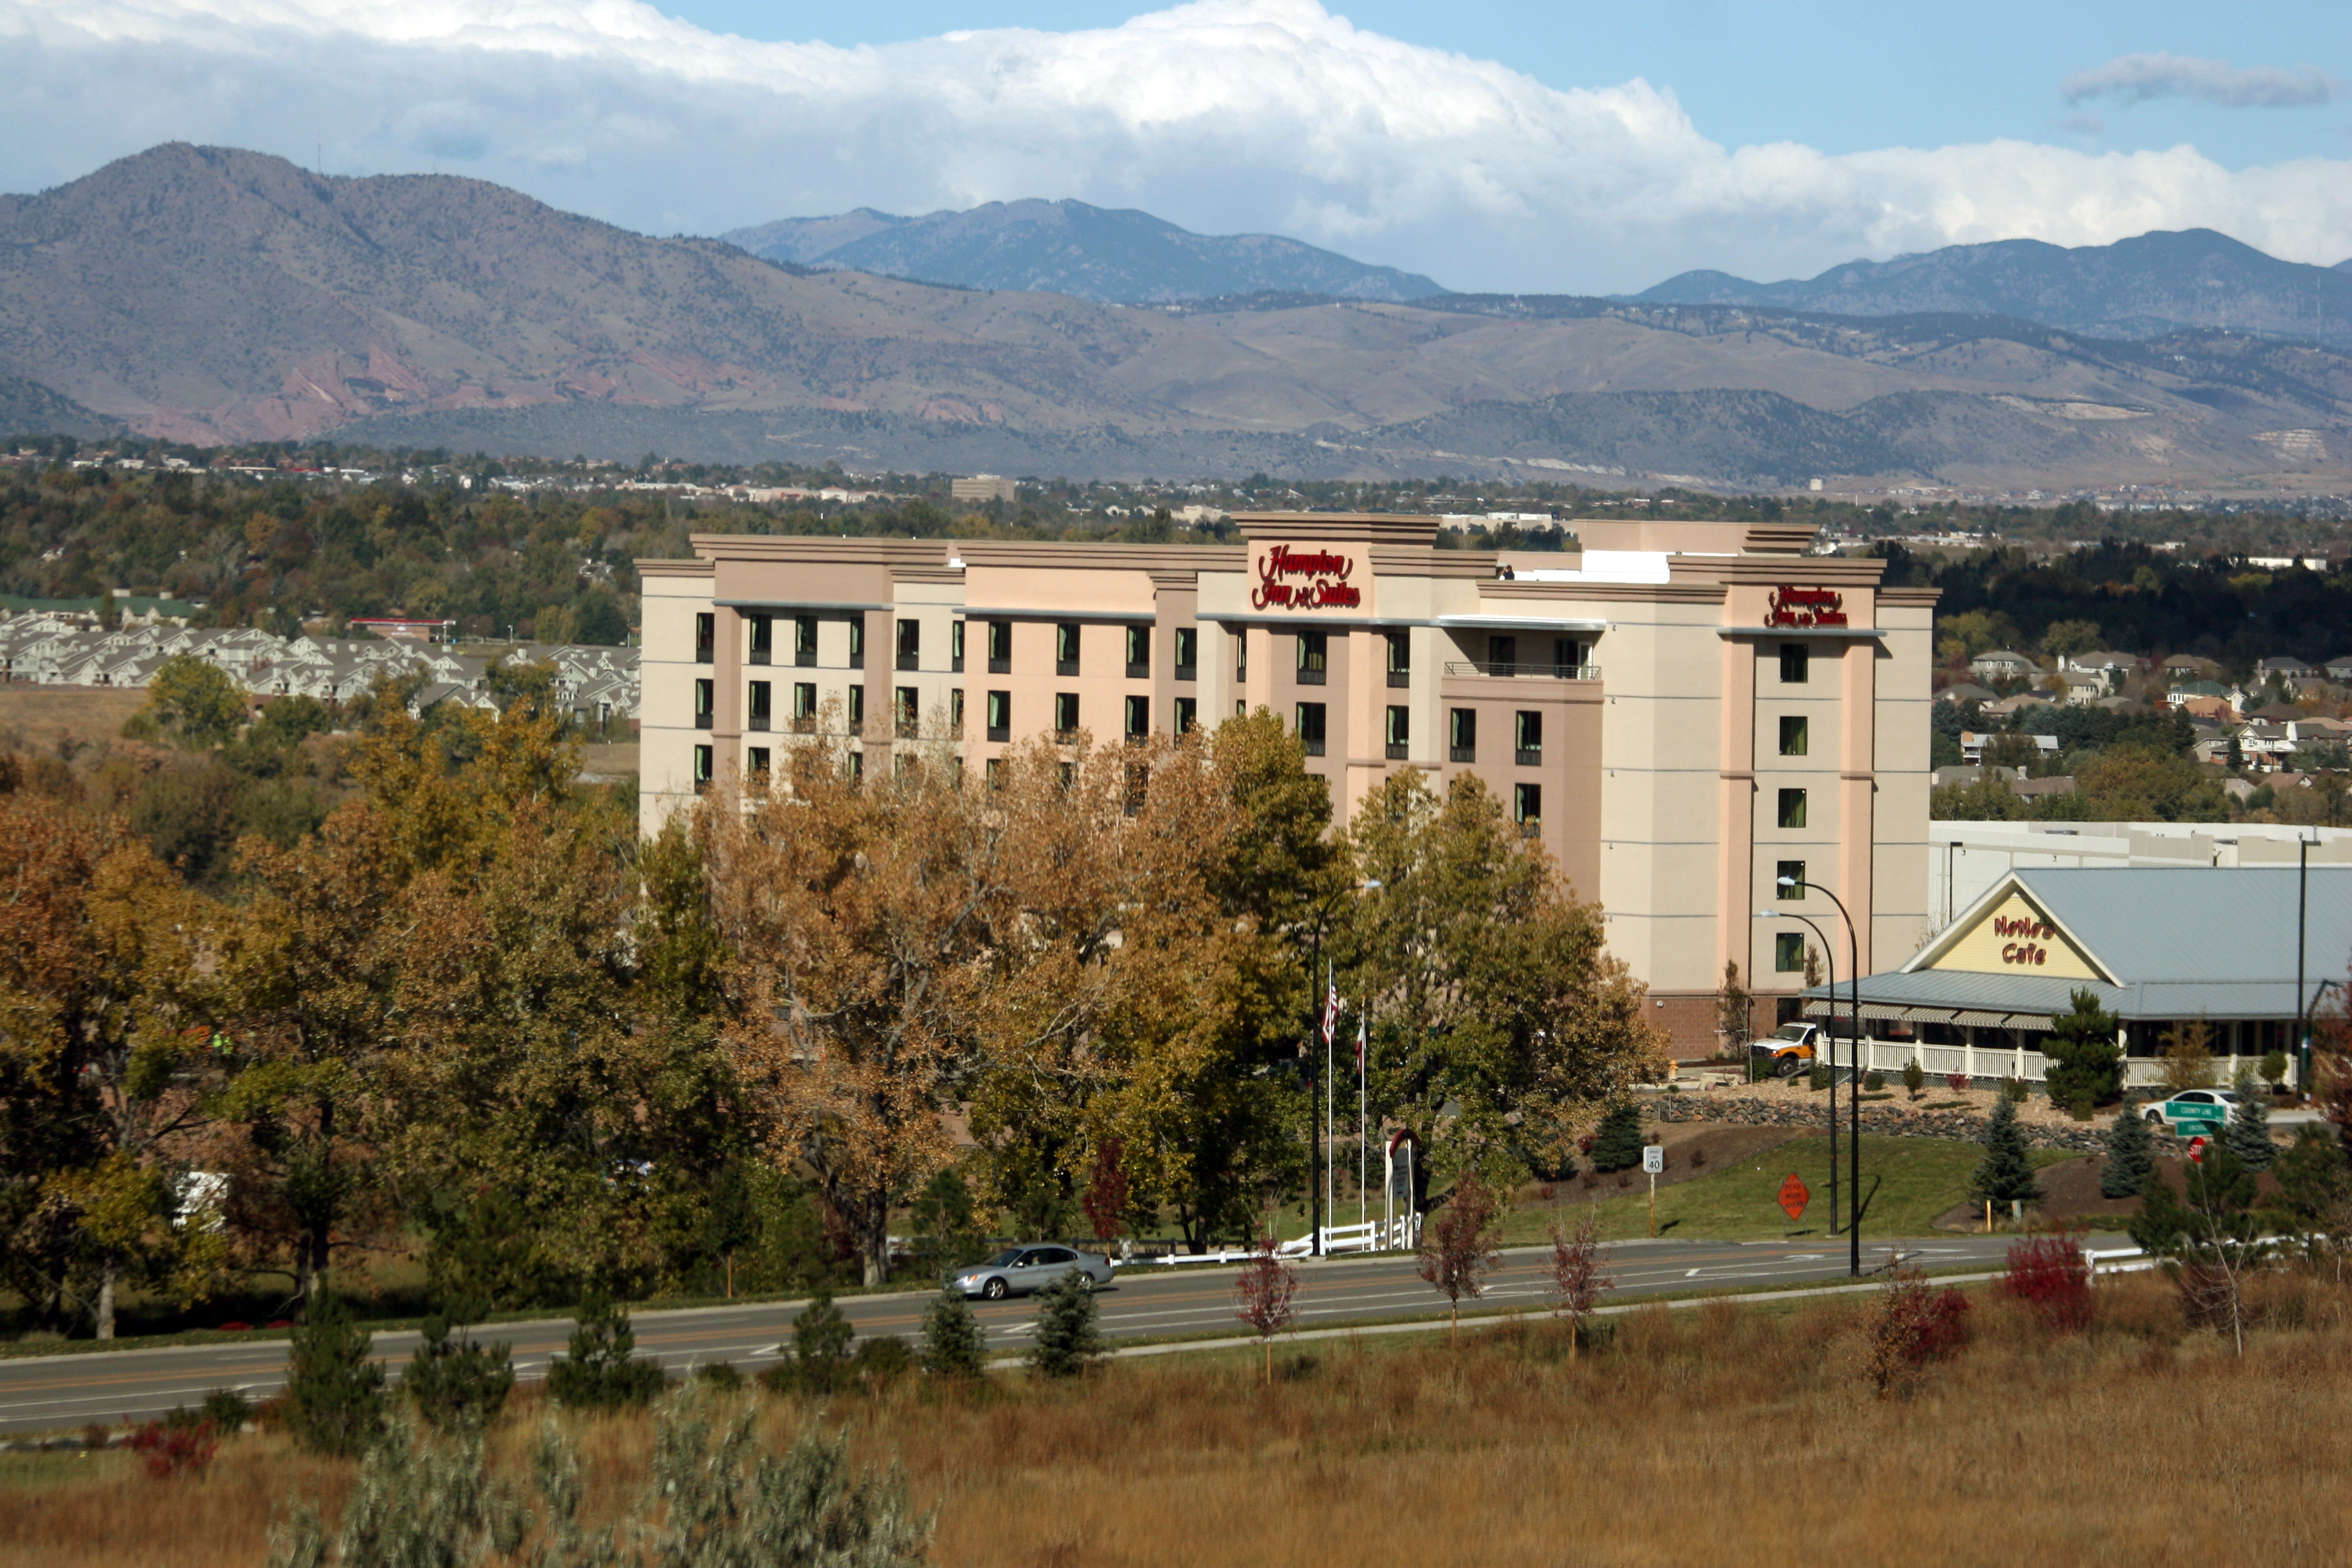 Hampton Inn & Suites Denver Highlands Ranch